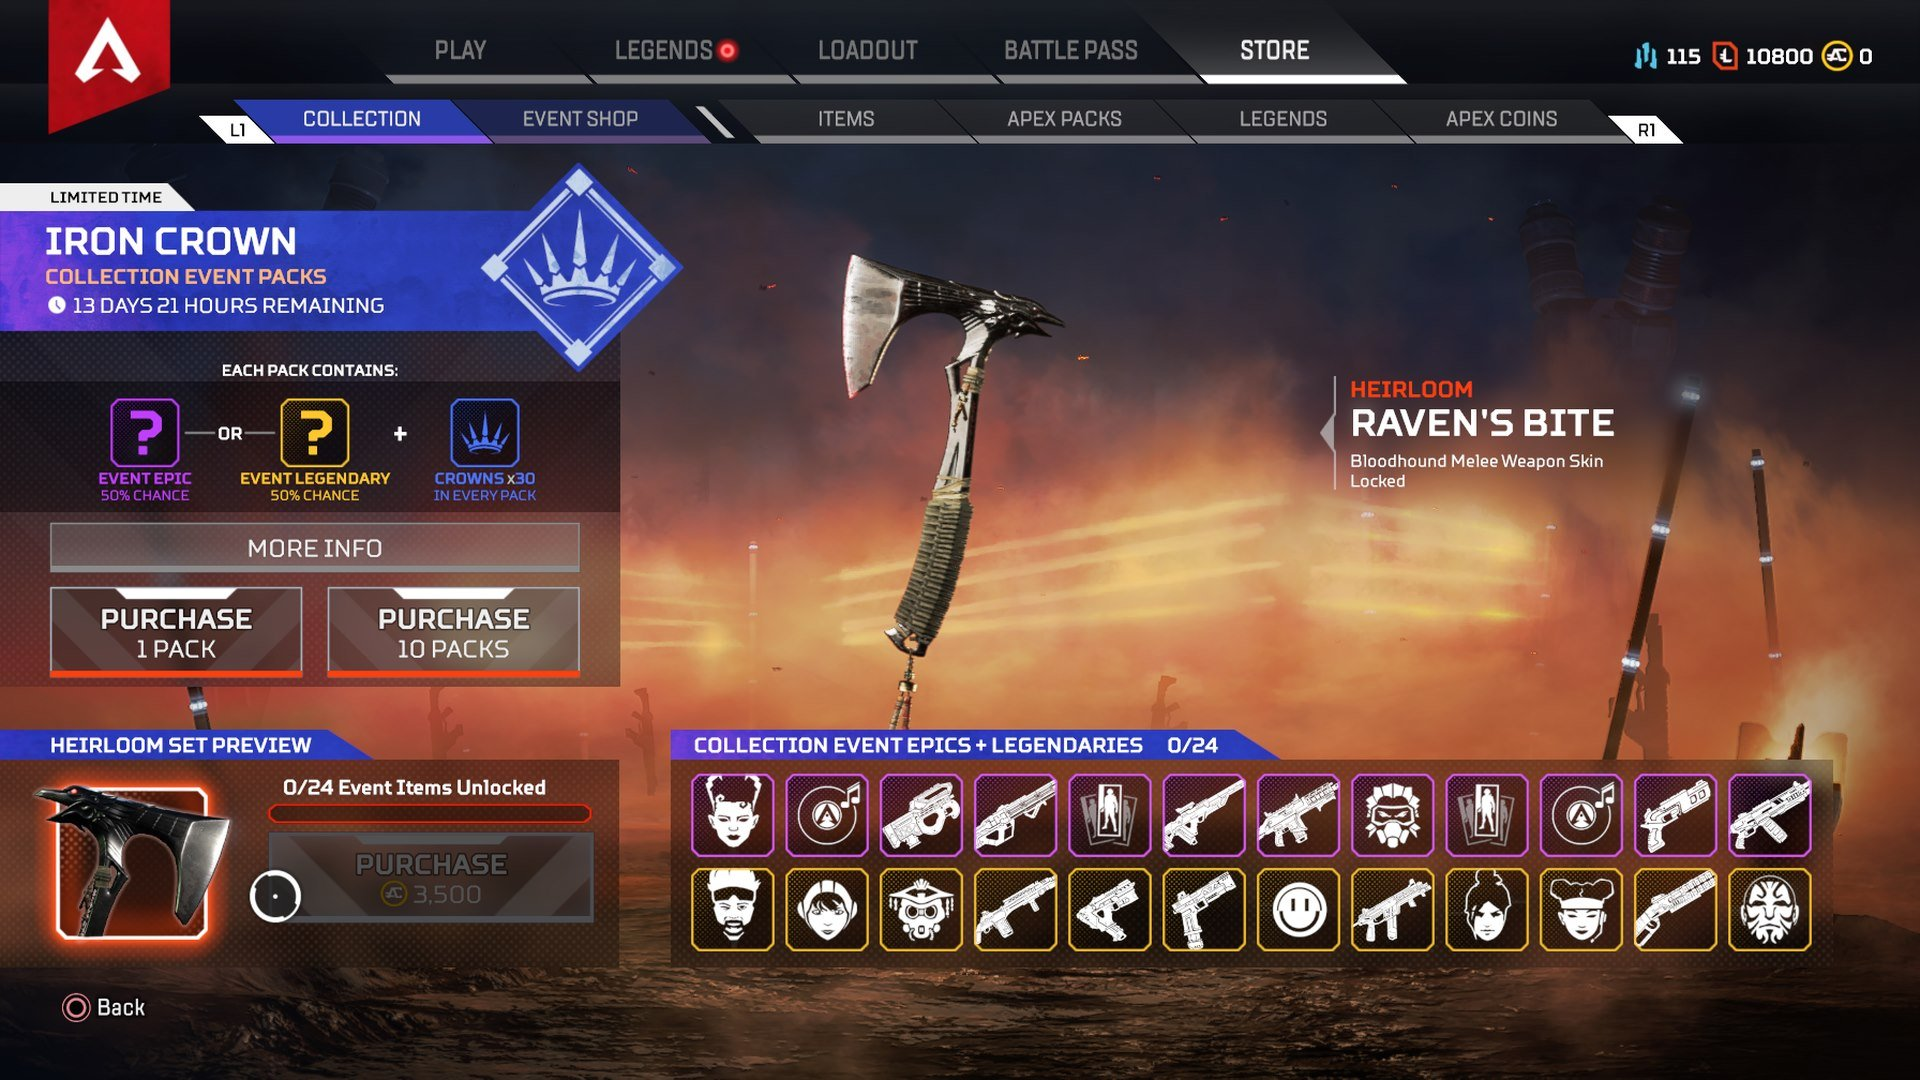 Rewards for completing Iron Crown Collection Event challenges include the ability to open Iron Crown Collection Packs in Apex Legends.